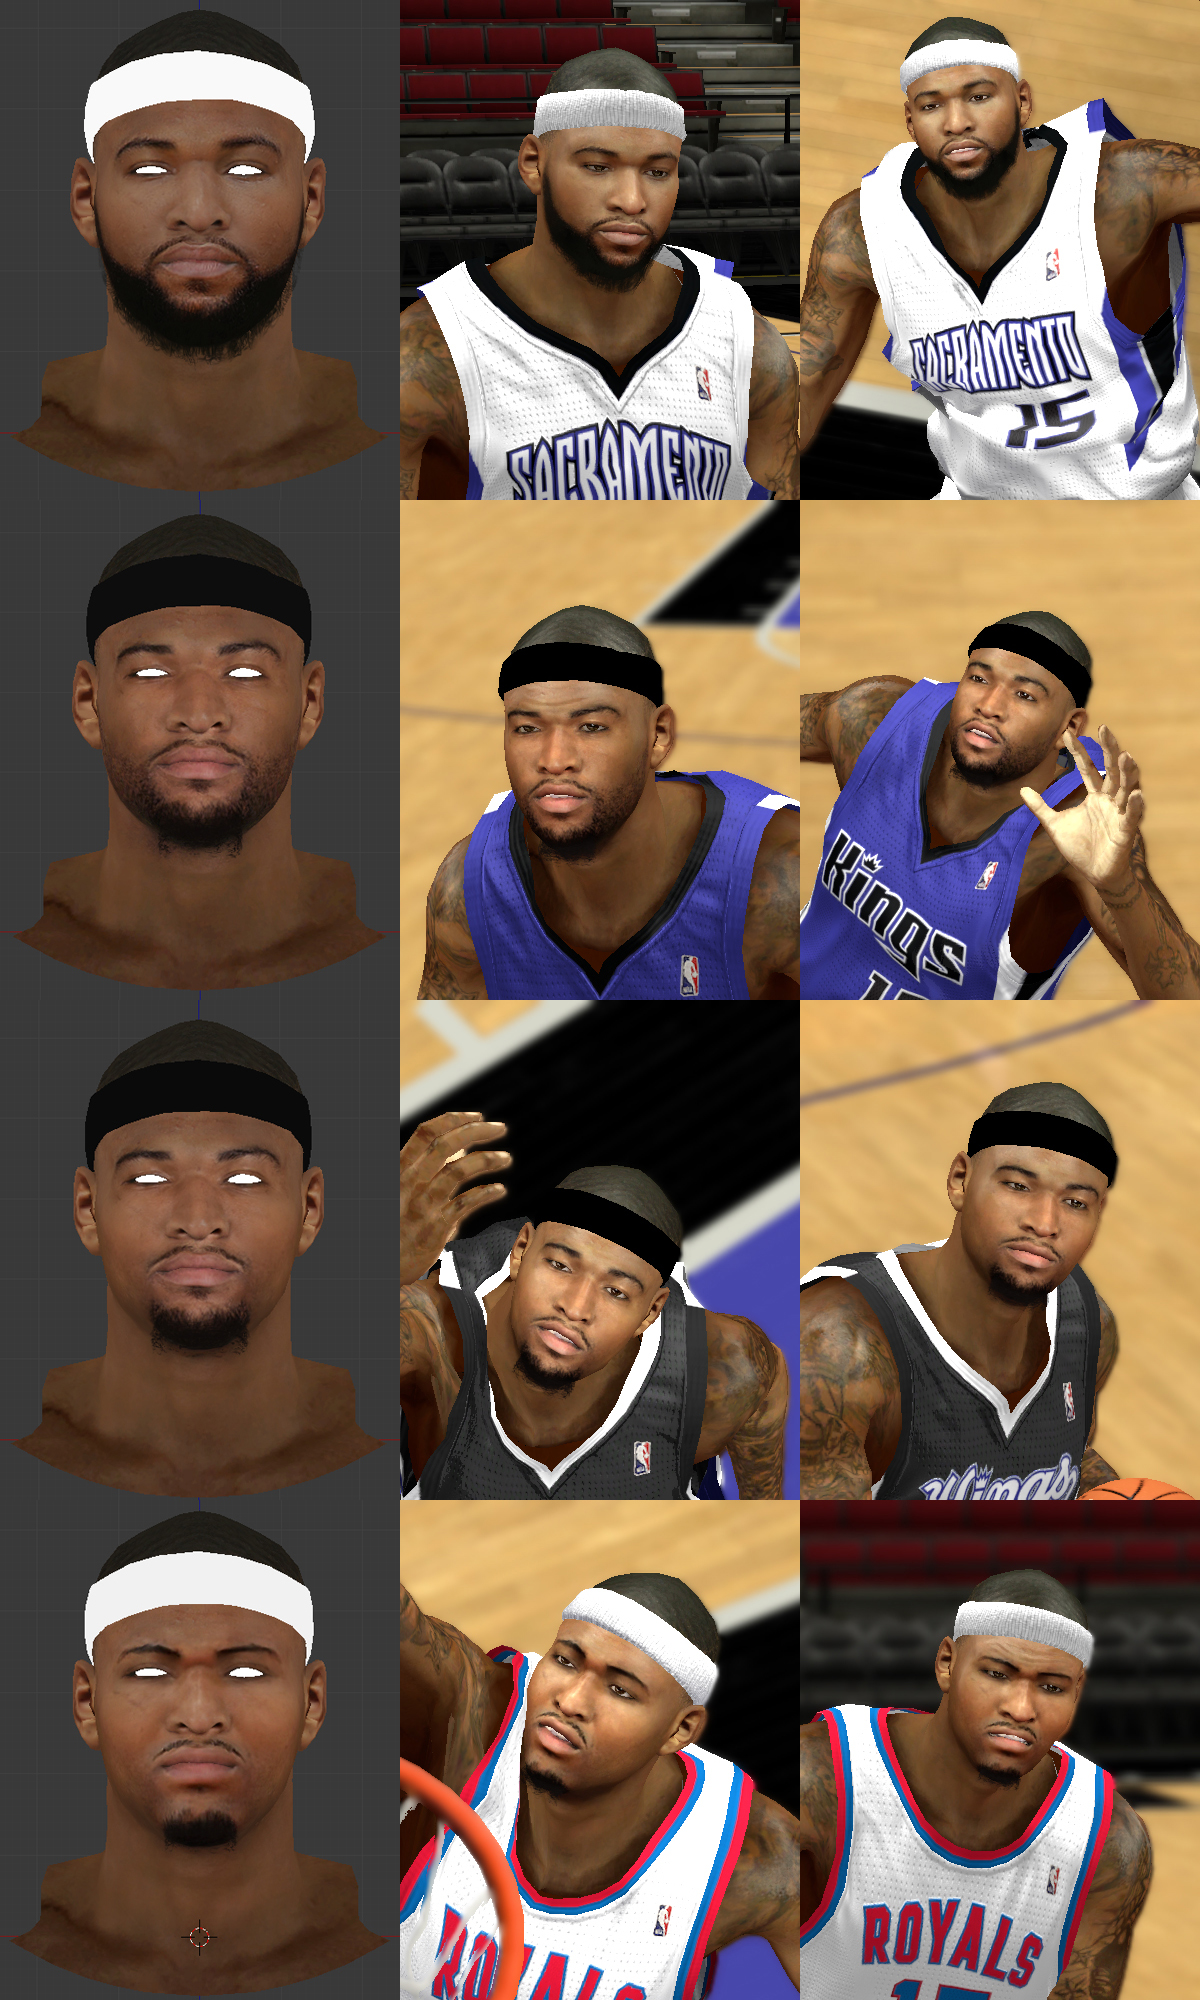 DeMarcus Cousins Face